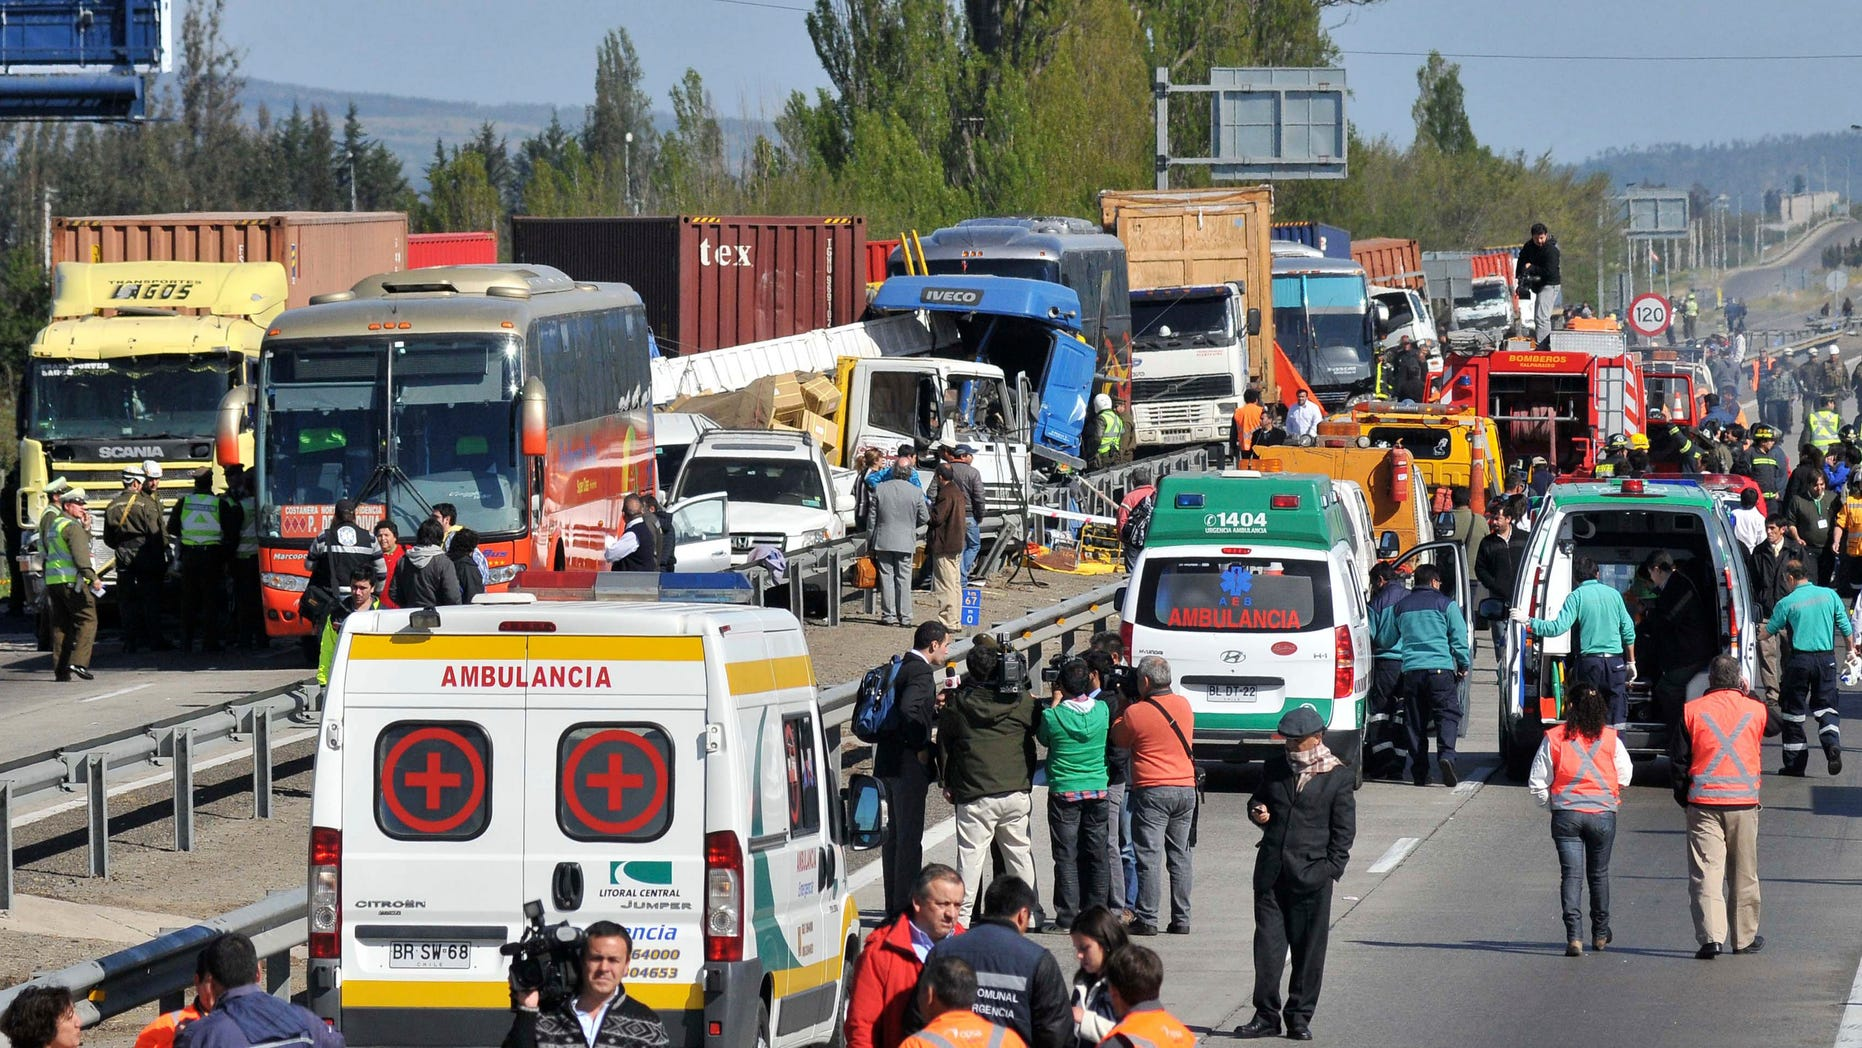 Emergency personnel gather at the scene of a multi-vehicle pile-up on a highway in Casablanca, about 43 miles or 70 kilometers from Santiago, Chile, Wednesday Oct. 12, 2011. According to government officials, at least four people died and 49 were injured.